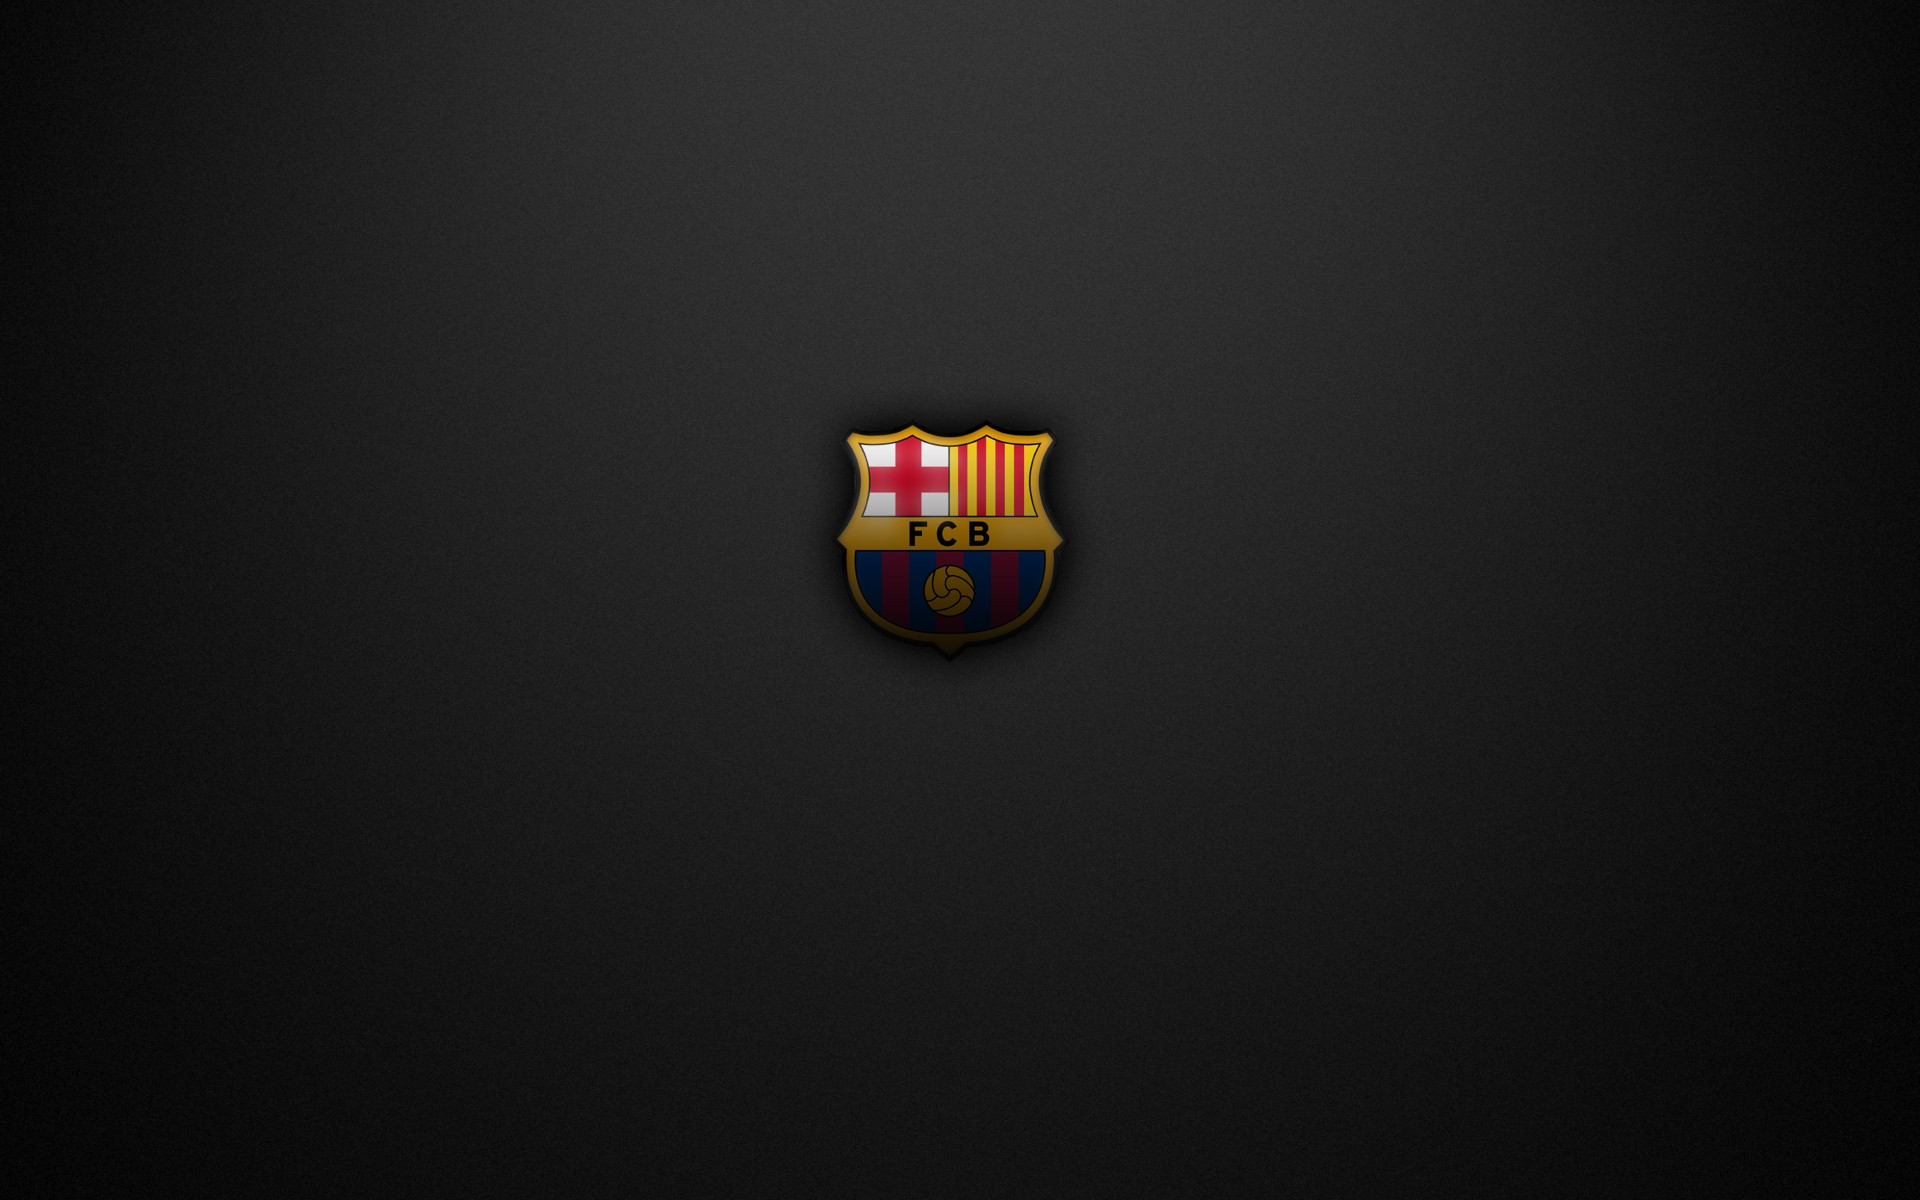 Sports Logos Fc Barcelona Wallpaper 1920x1200 10866 Wallpaperup